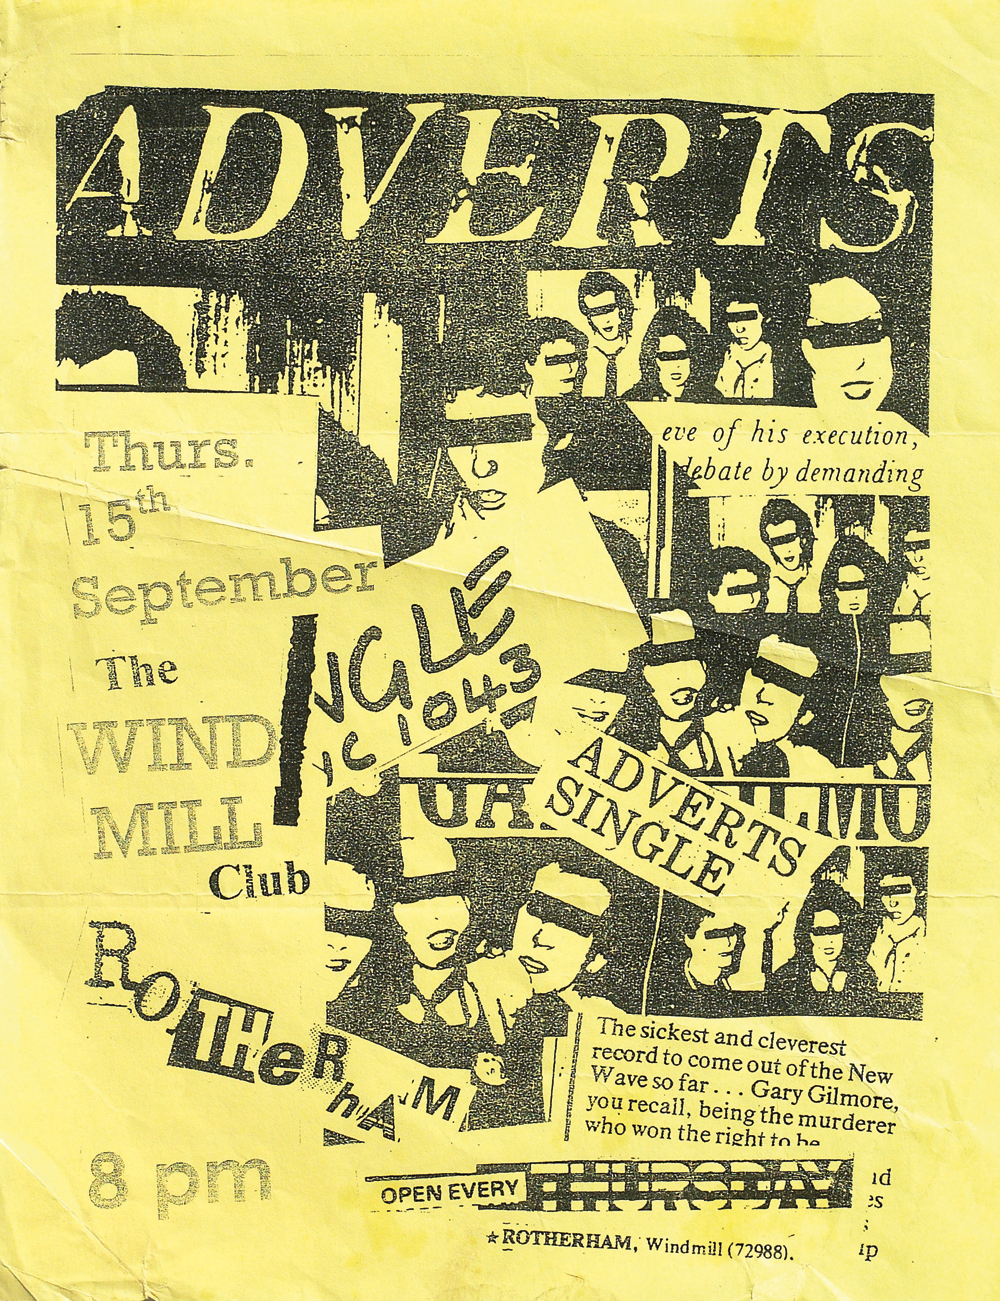 221 The Adverts poster.jpg